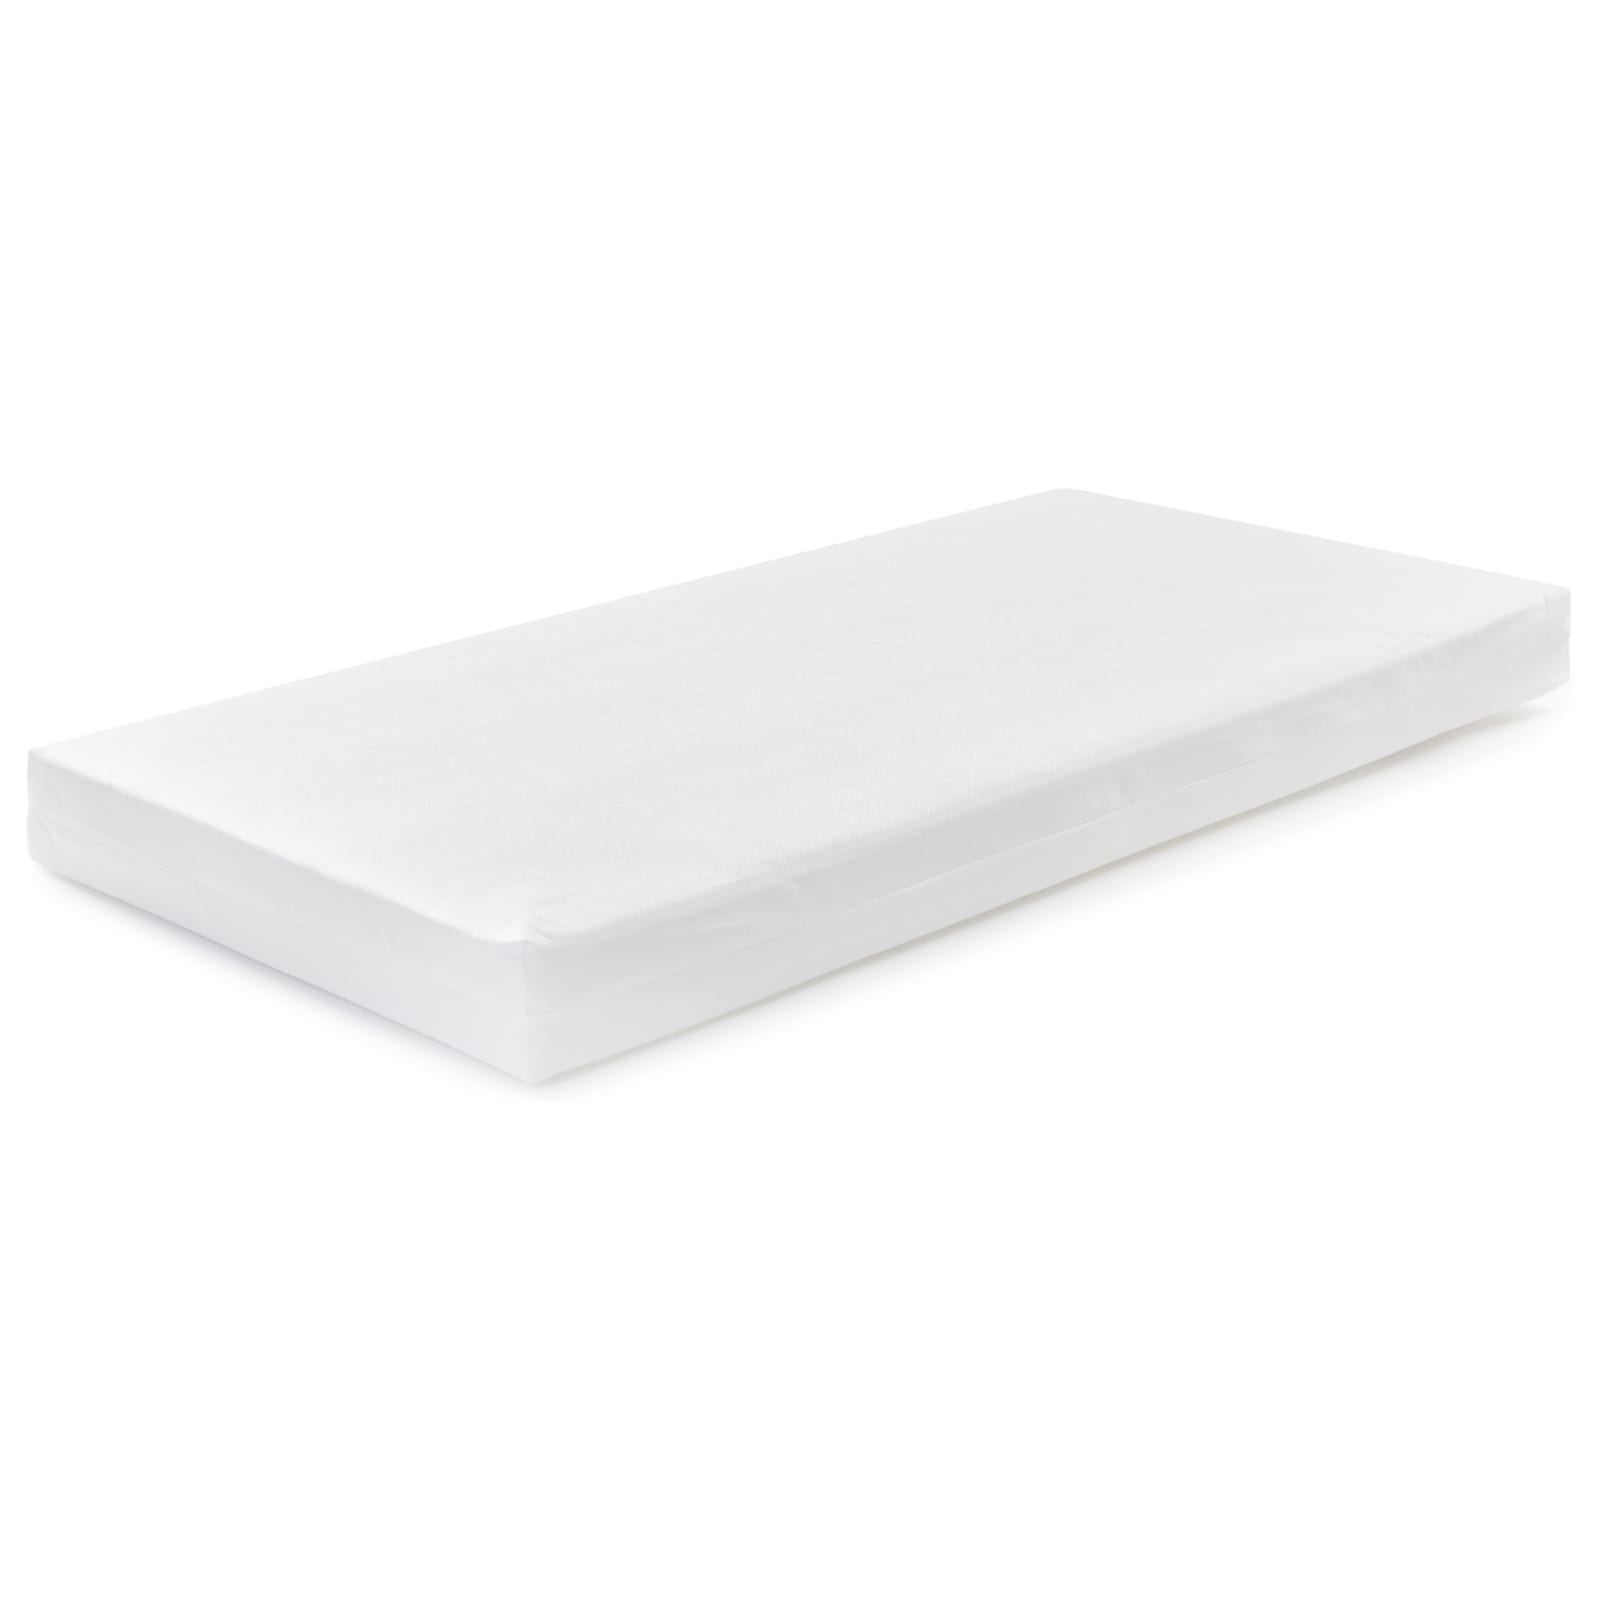 Eco Foam Mattress  –  Cot – 60x120x10cm product image